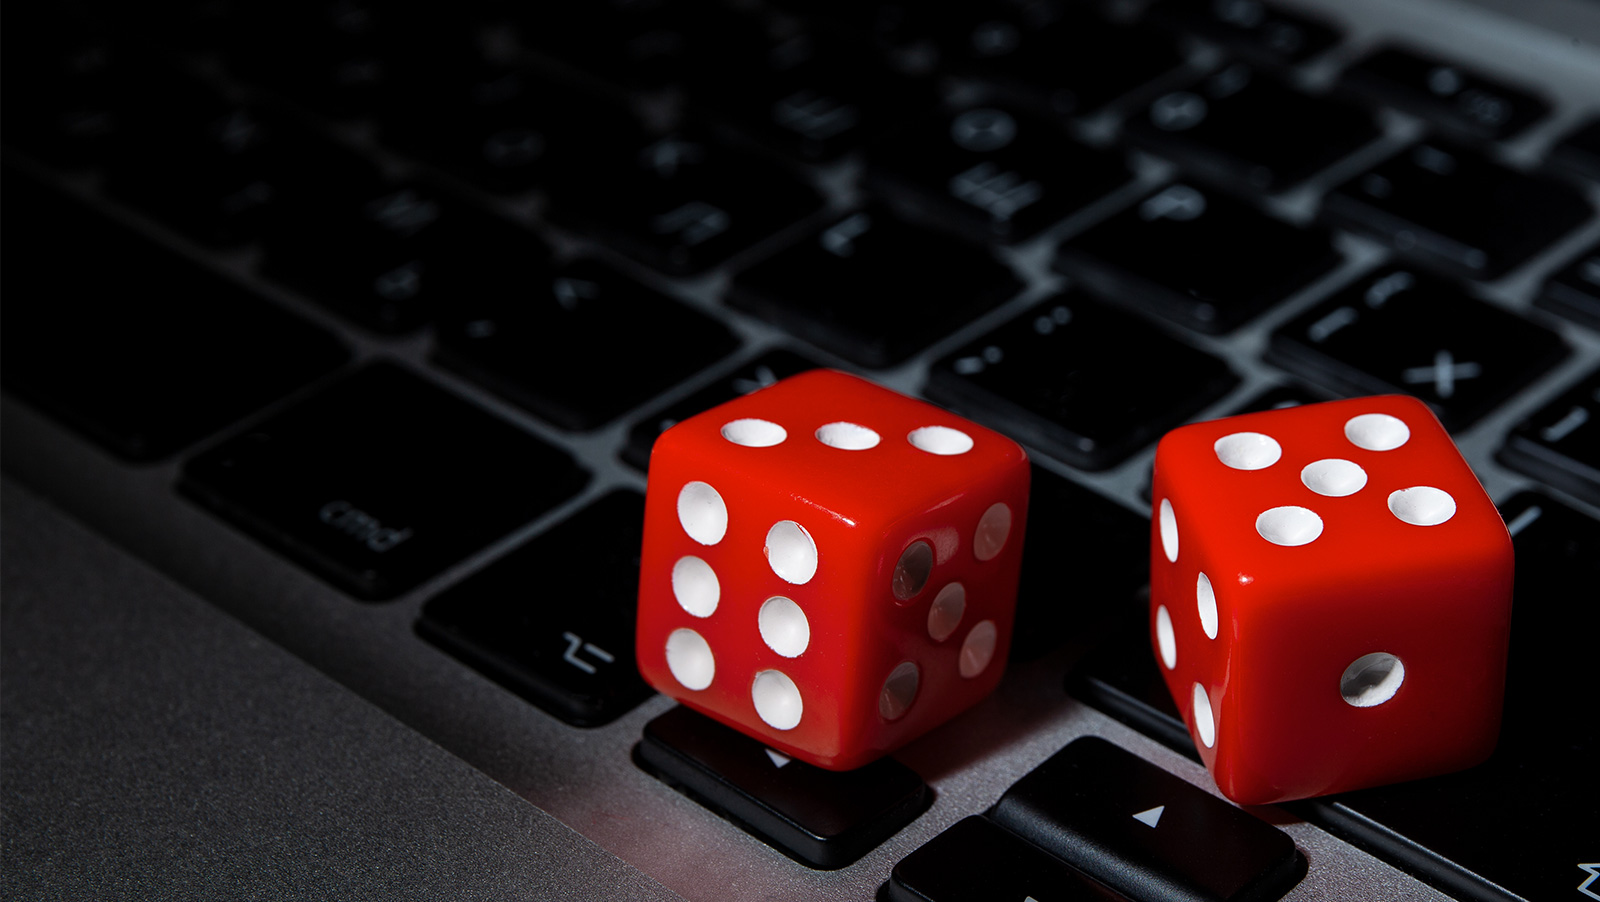 Tips To Safely Play a Proper Online Hold'em Game